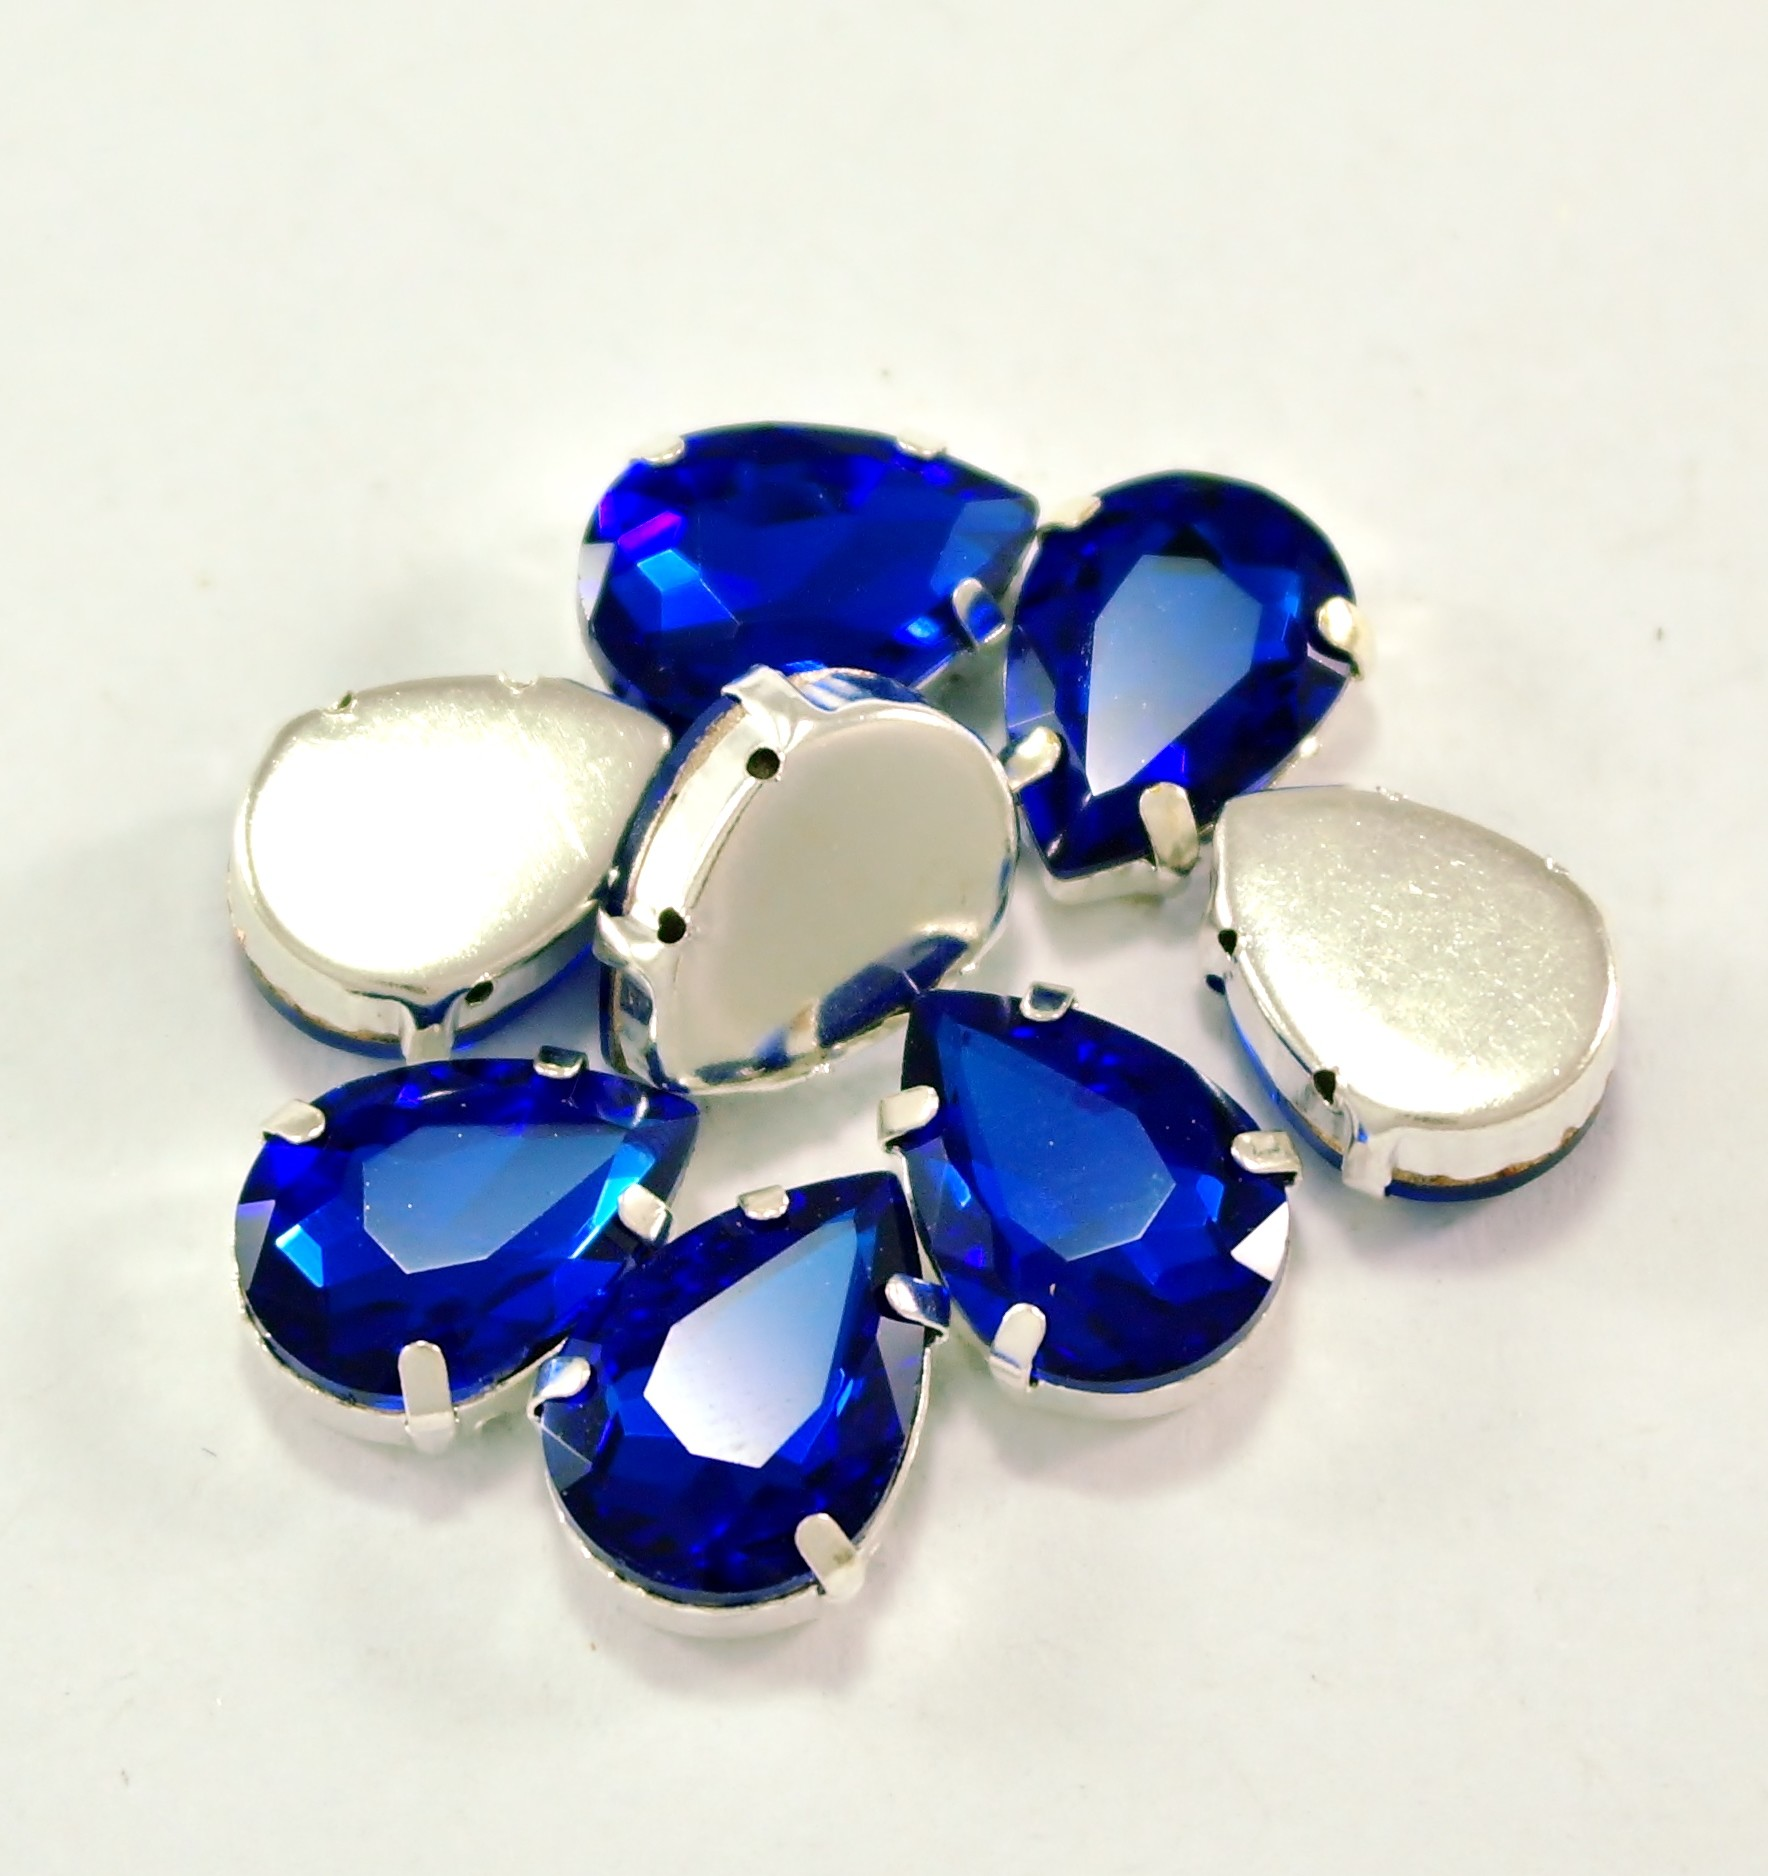 GLASS BEADS - COBALT TEAR DROP (T4)